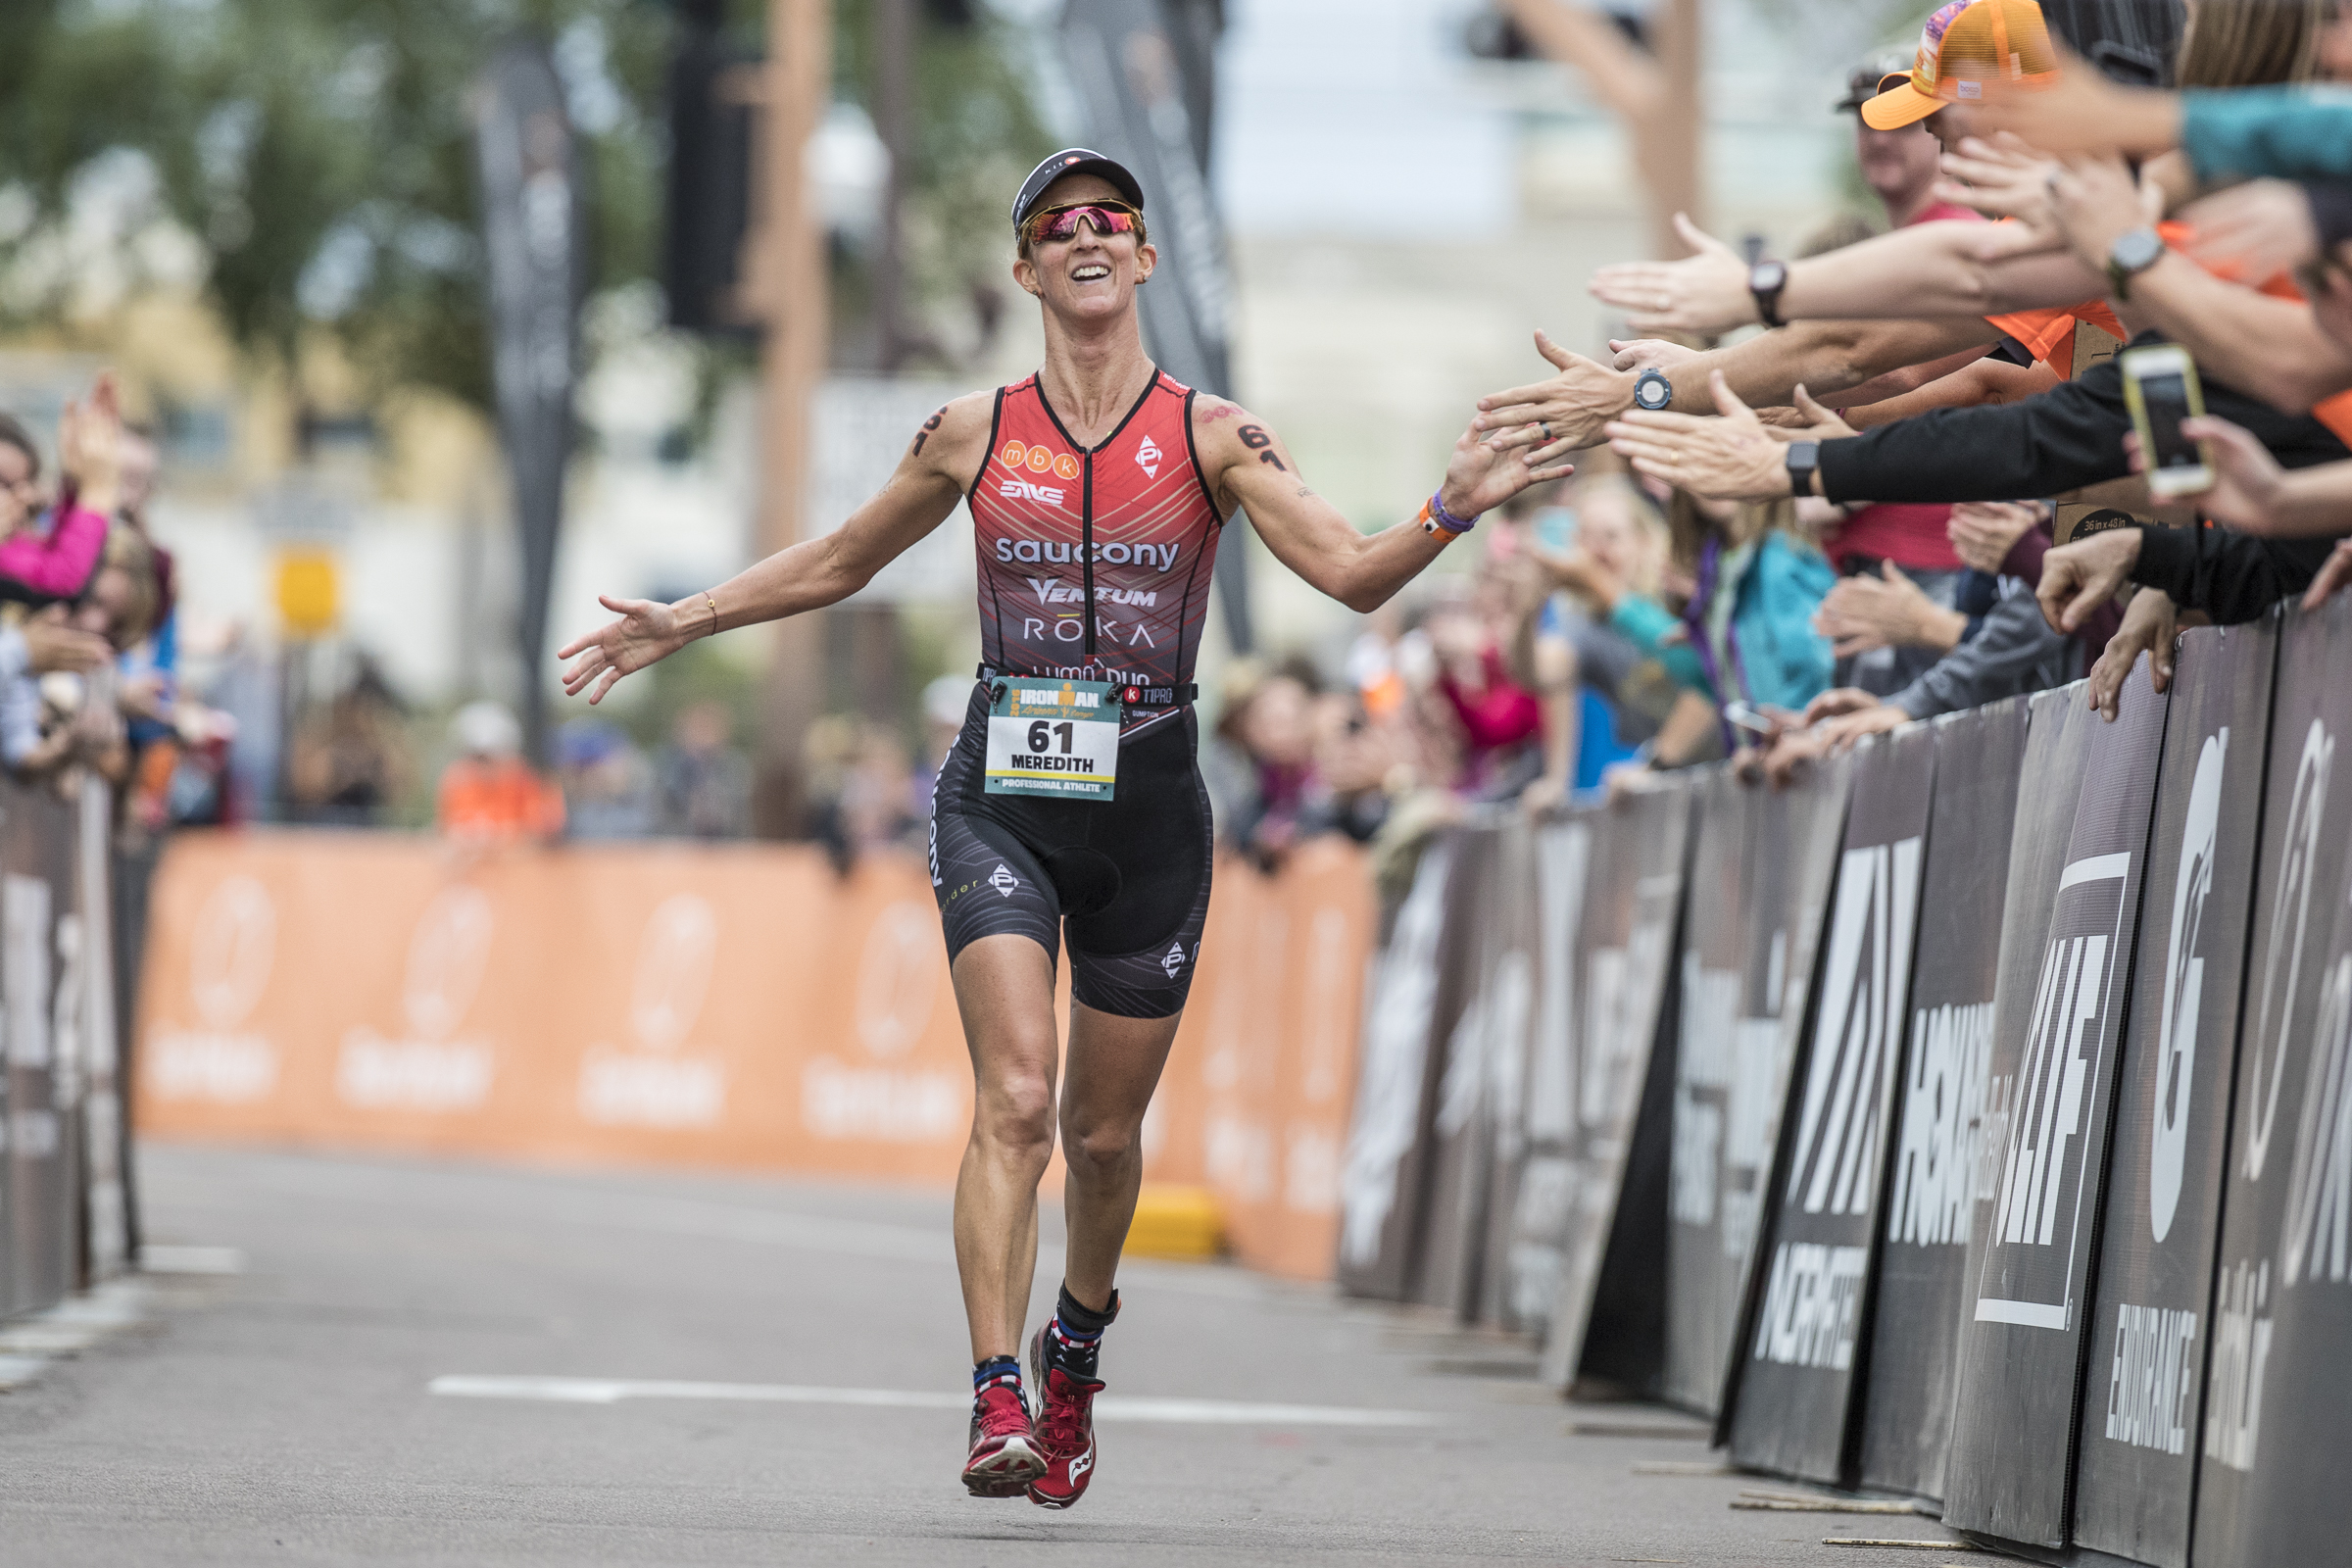 Meredith Kessler triathlon Ironman Arizona finishing chute